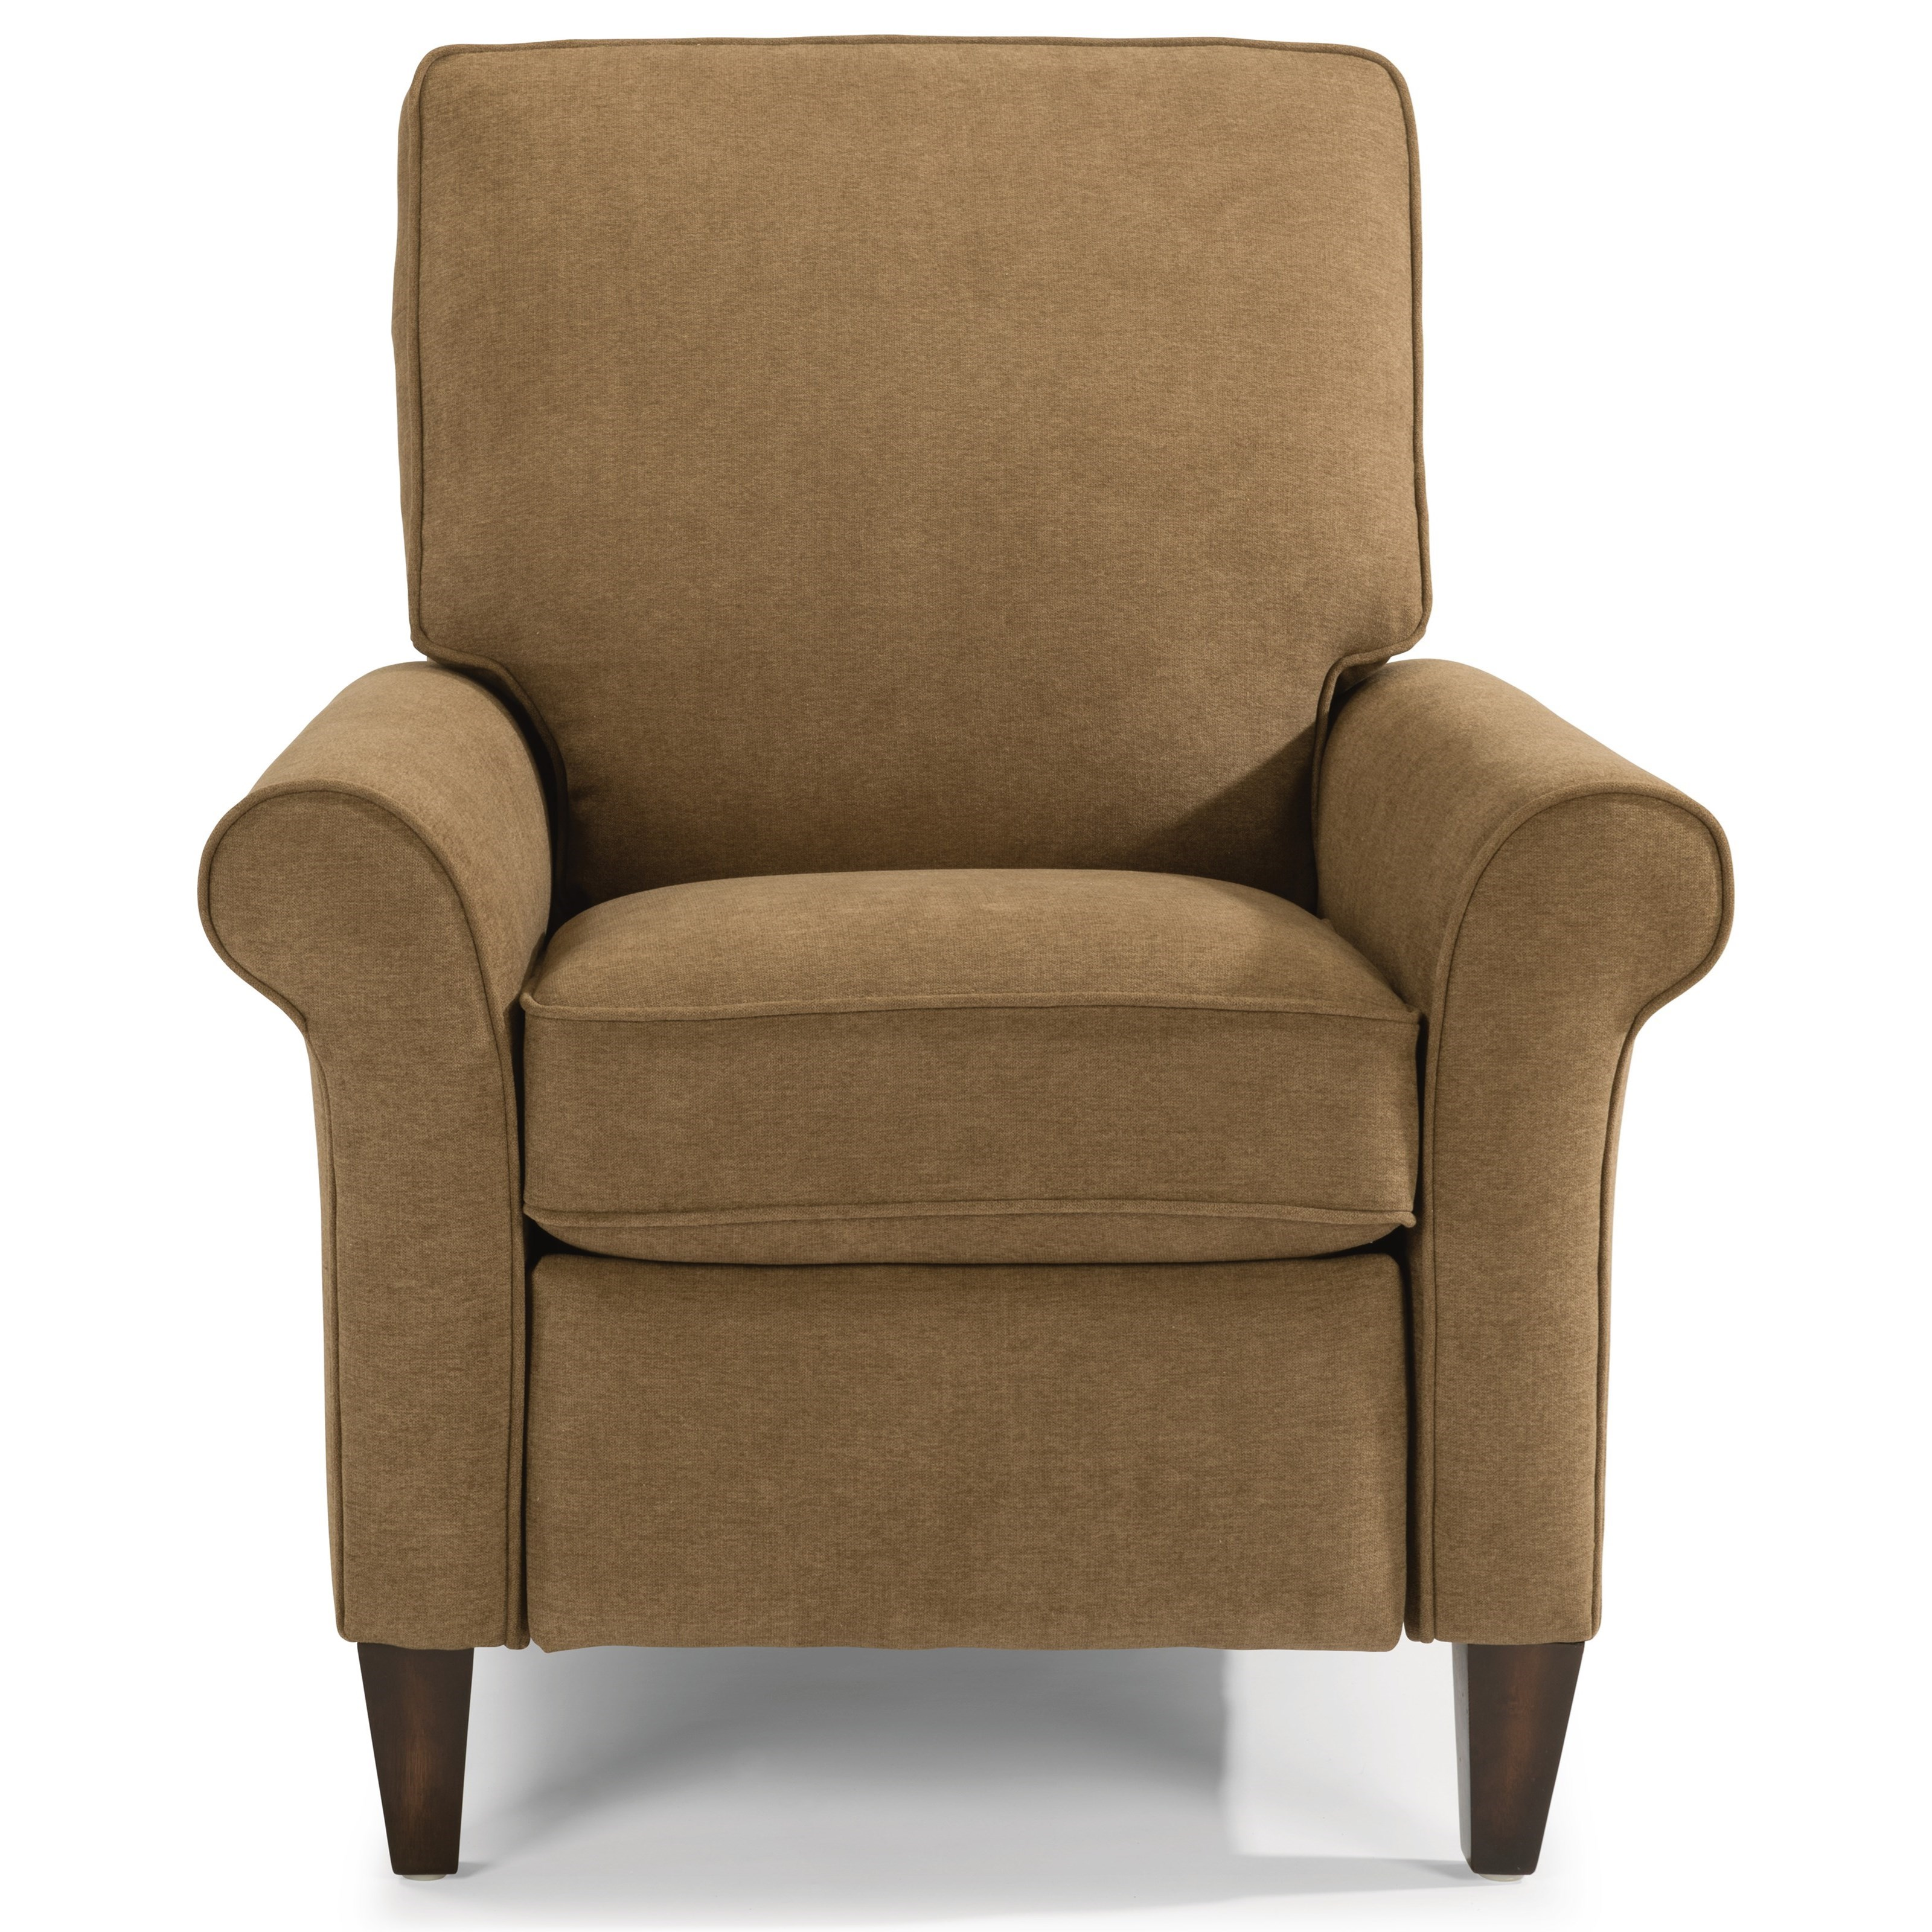 Westside High Leg Recliner by Flexsteel at Fisher Home Furnishings